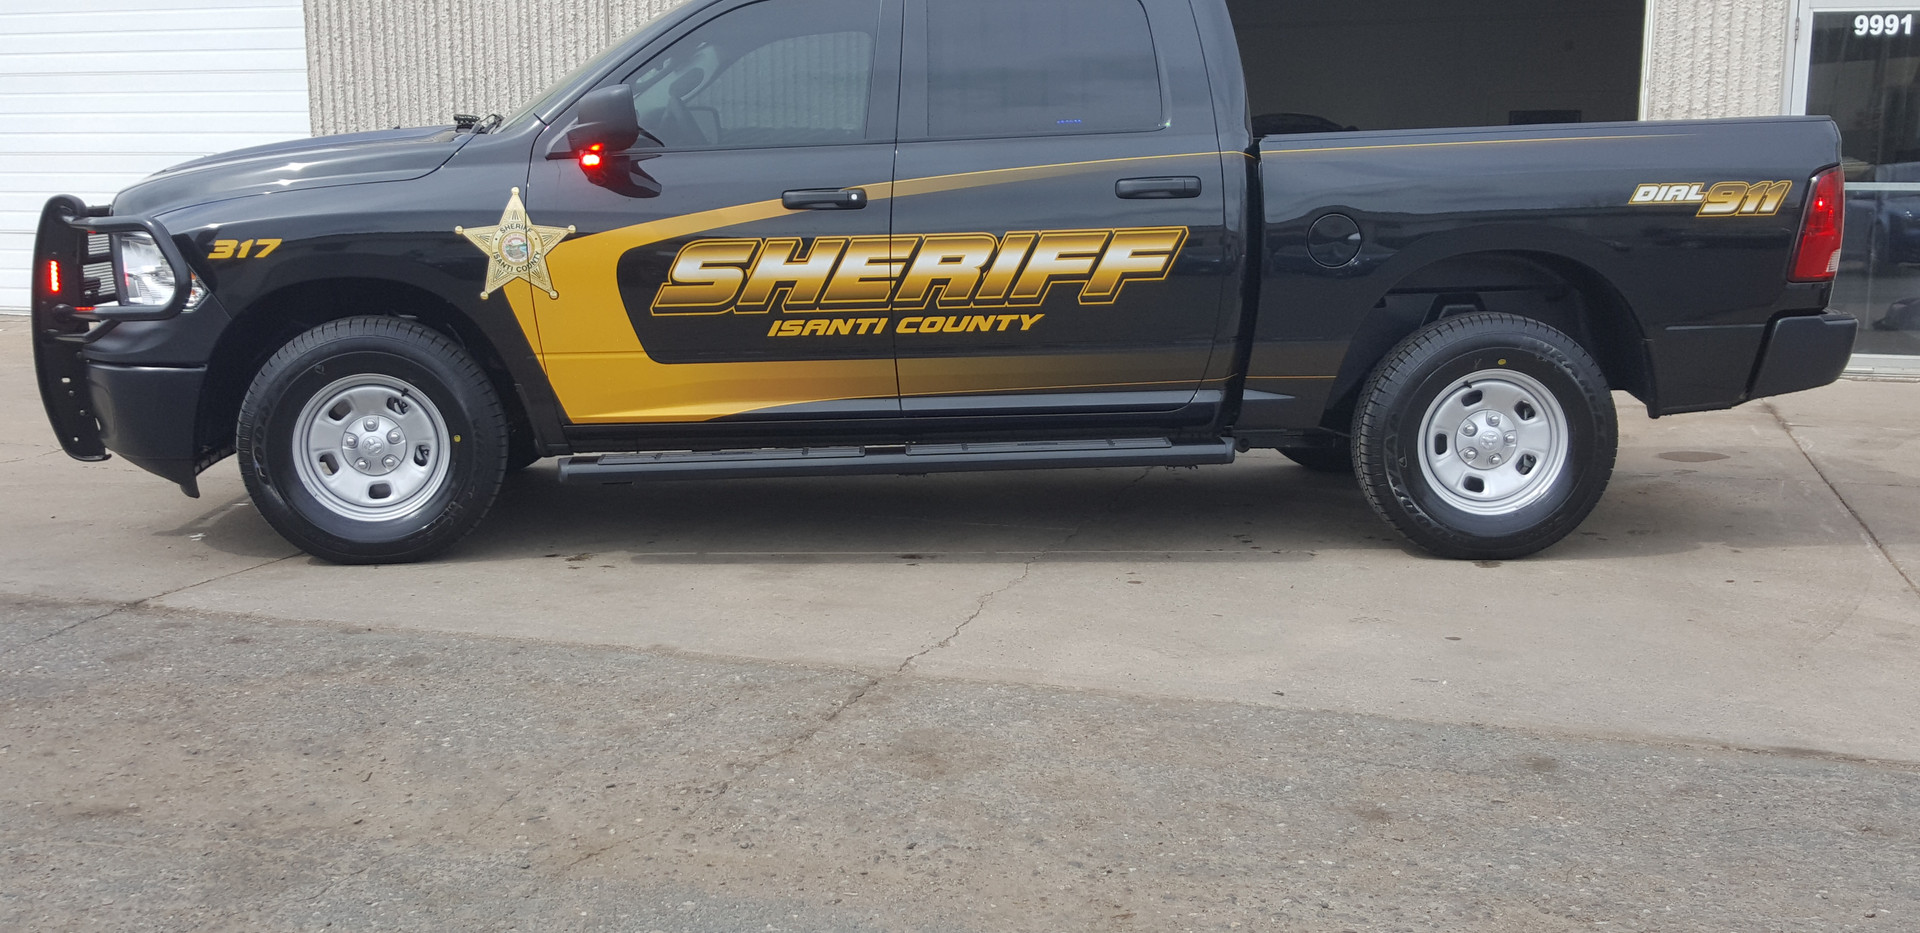 Isanti County Sheriff's Office 2.jpg